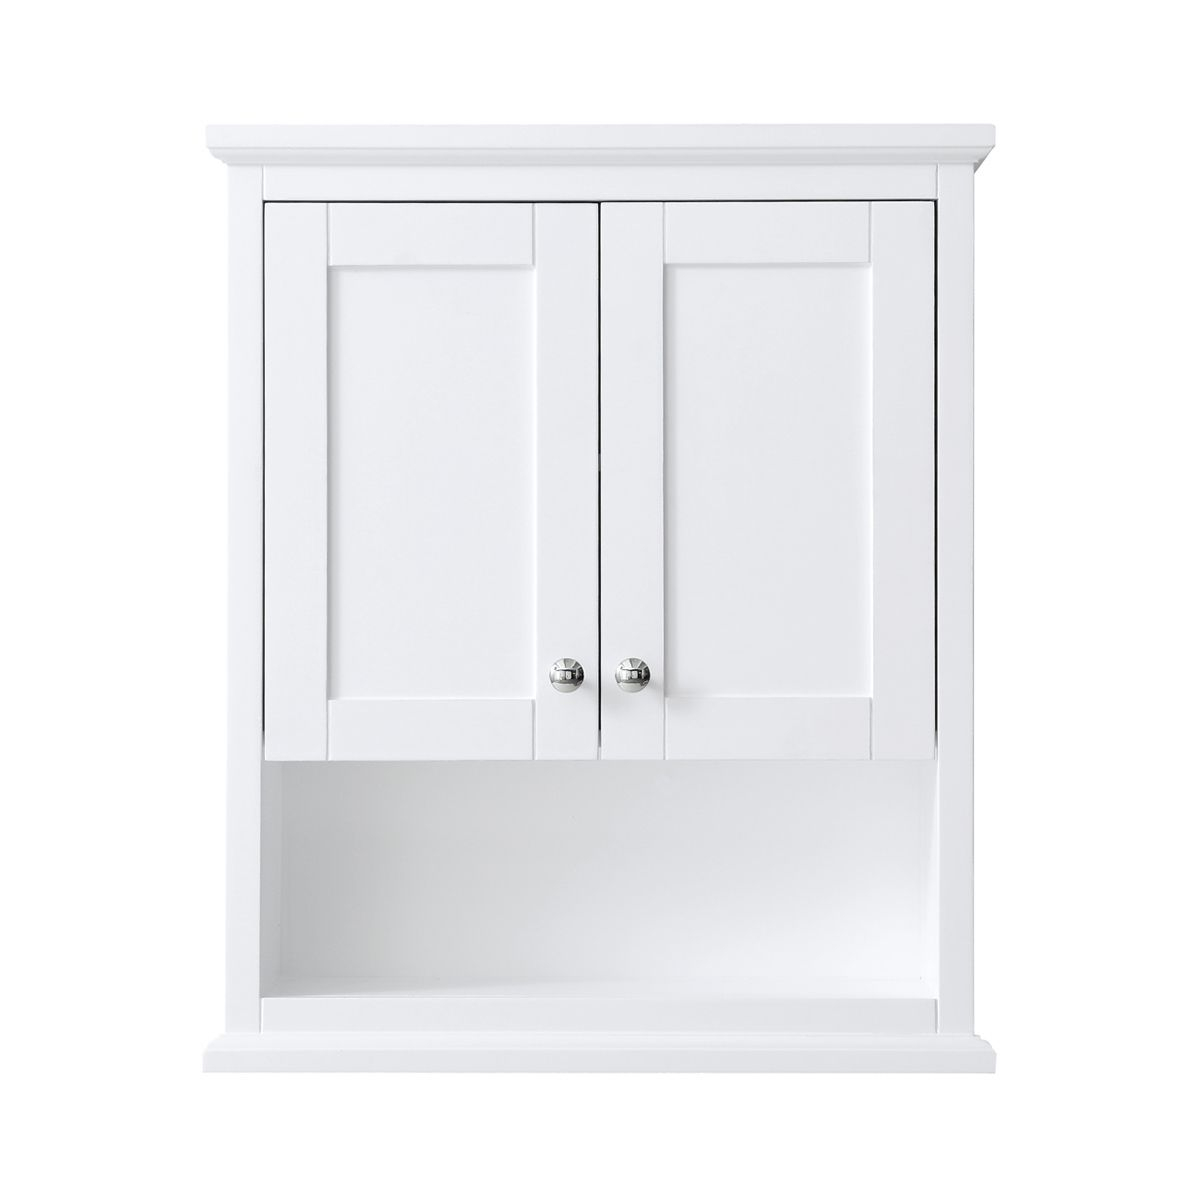 Wall Mounted Bathroom Storage Cabinet In White inside proportions 1200 X 1200